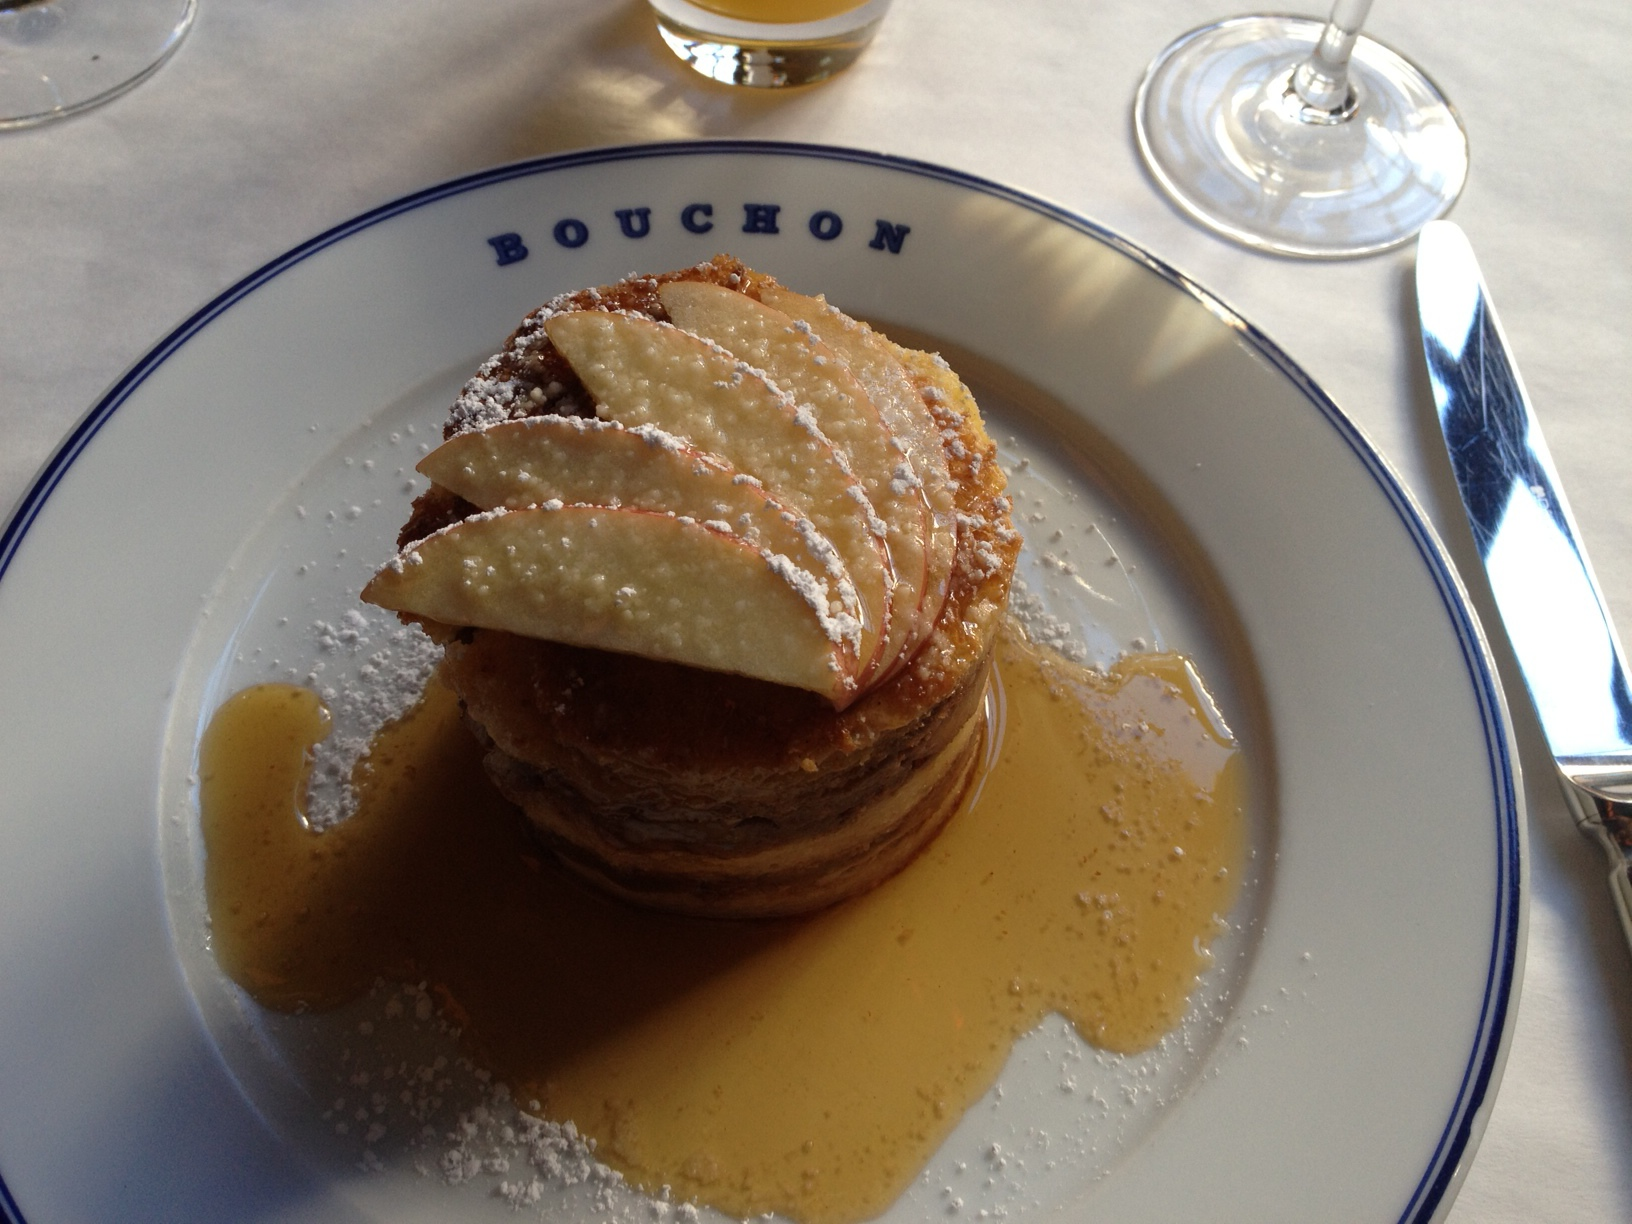 Bouchon French toast 1.JPG